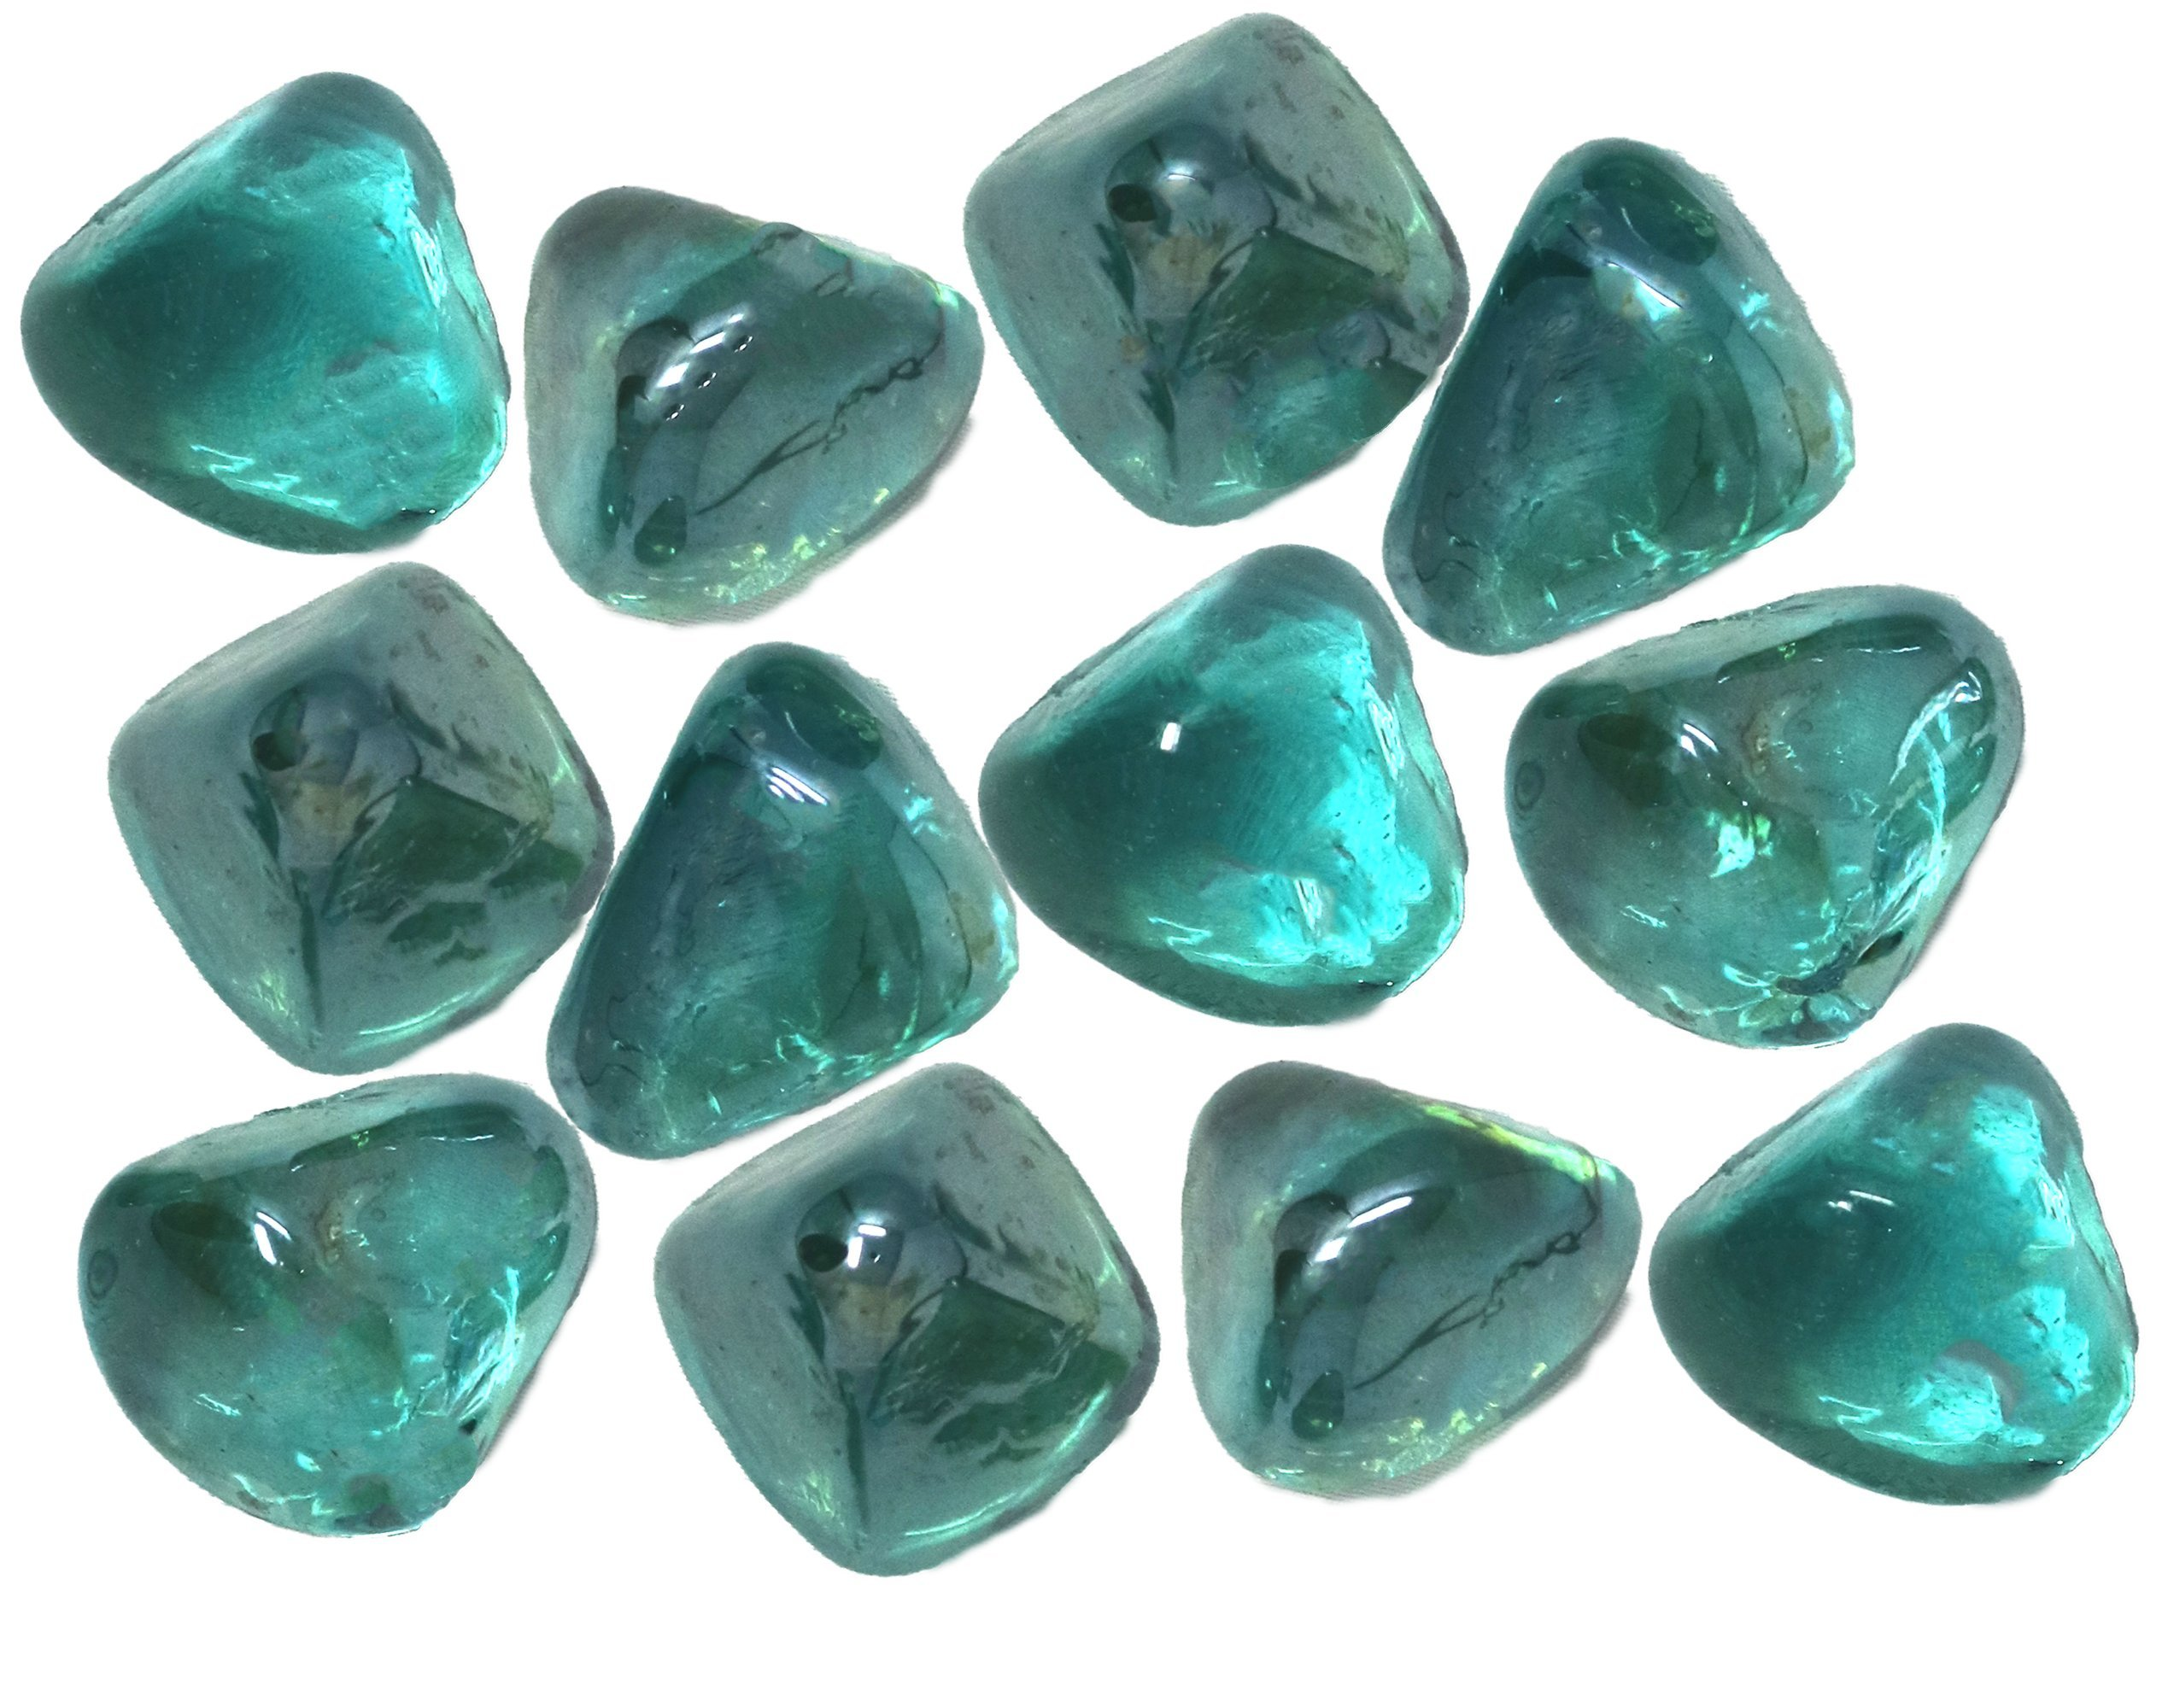 Distinctive Glass Jewel Gems for Vase Filler, Table Scatter or other Beautiful Accents (2.2 Pounds, Teal Blue Green) by Panoramic Decorative Accents